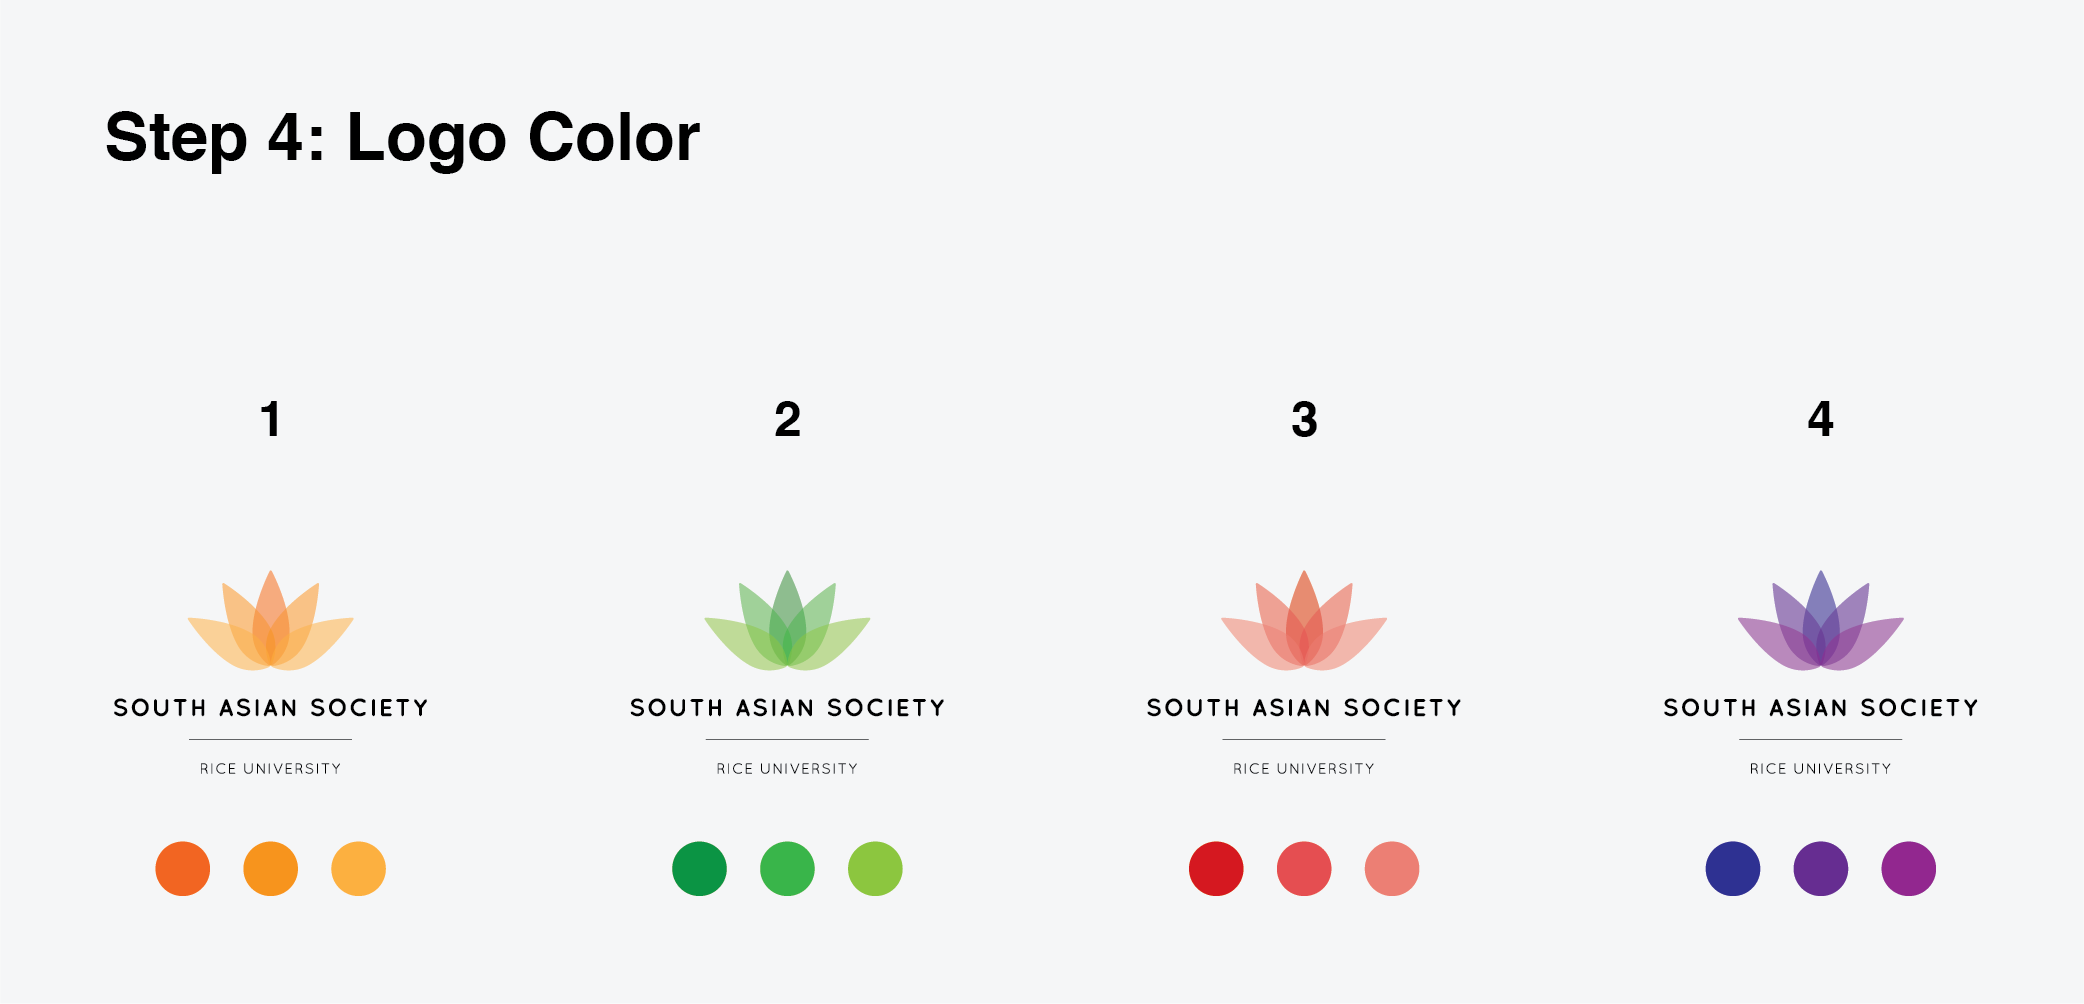 Potential logo color schemes. Option 3 was selected for its close semblance to the standard pink lotus flower.